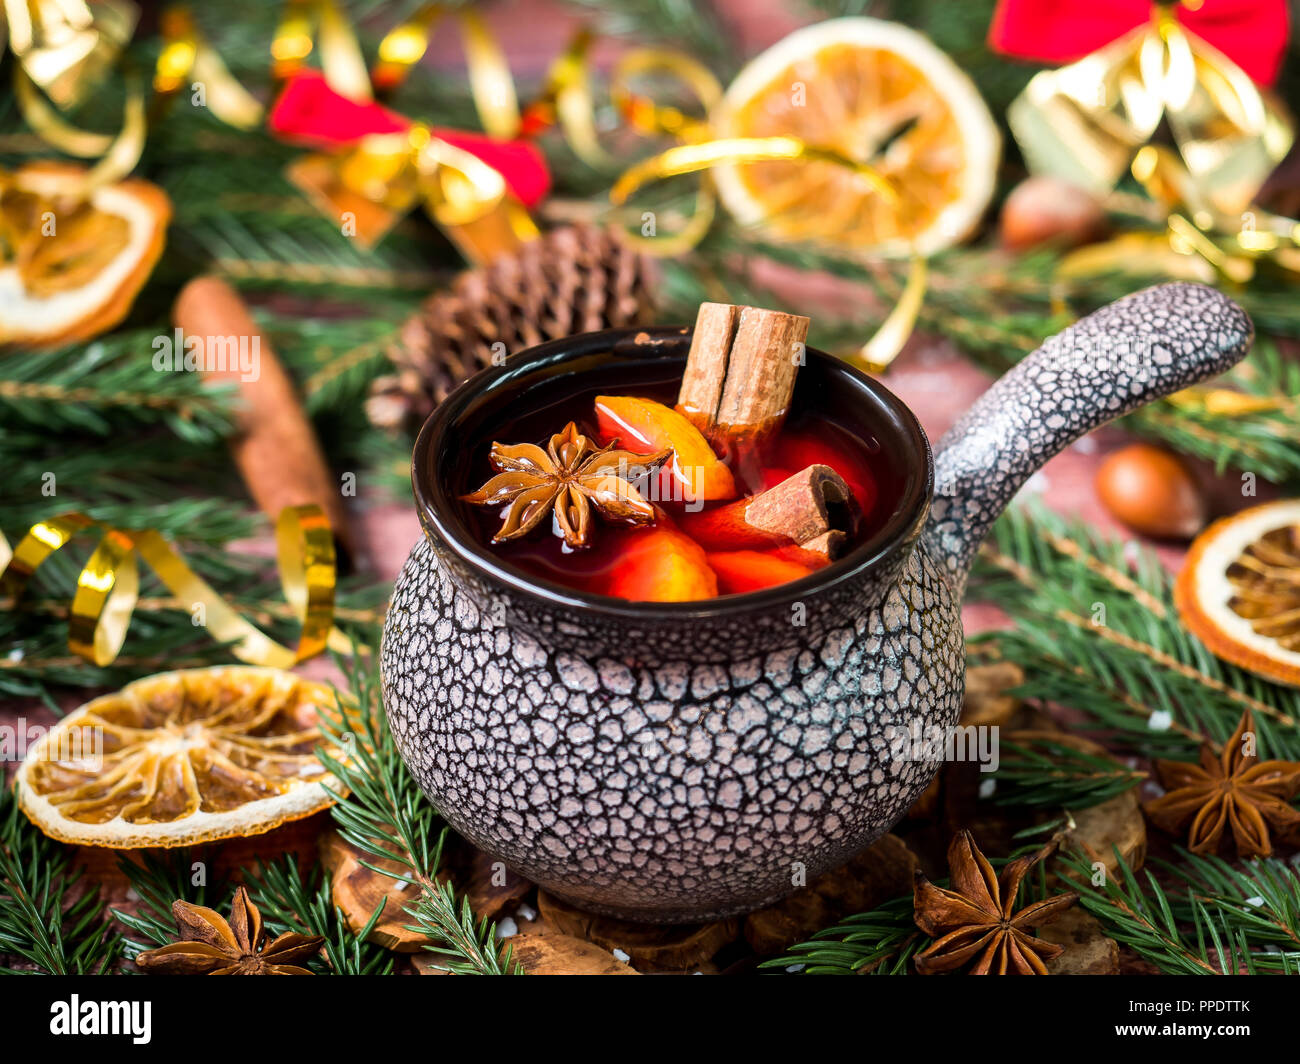 Christmas mulled wine with cinnamon, orange and star anise in a ceramic bowl with winter decorations. - Stock Image